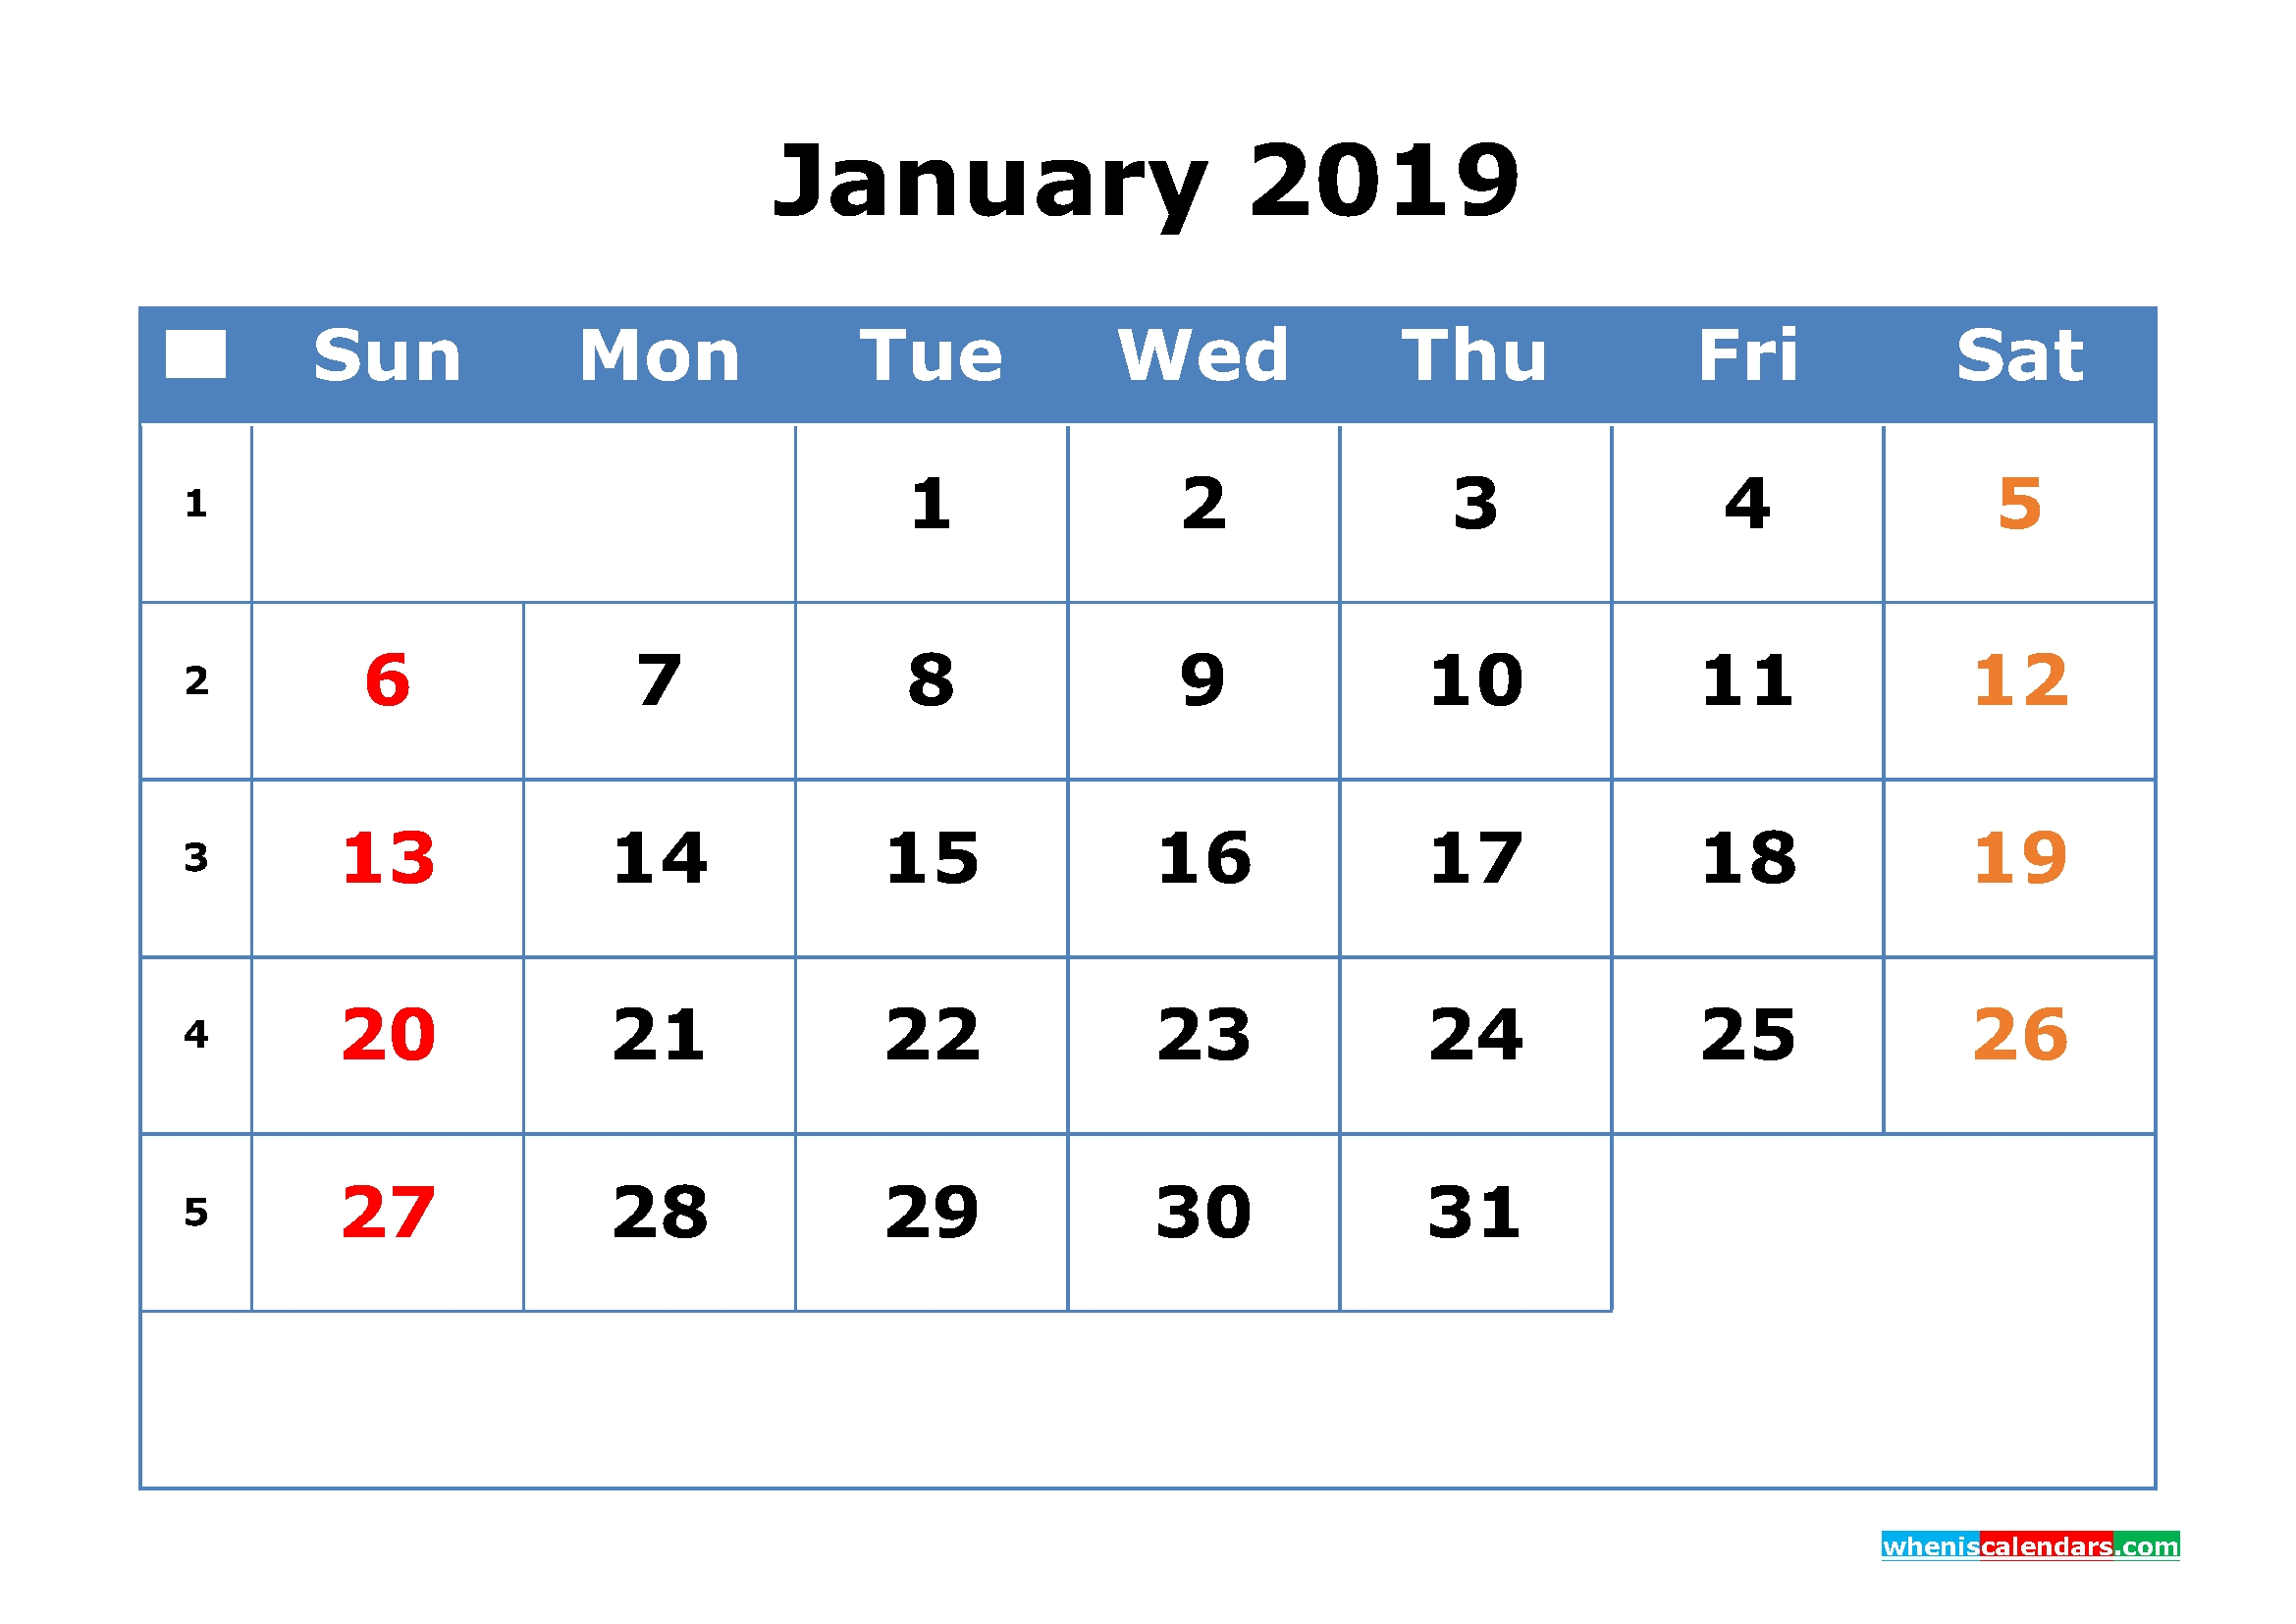 2019 Calendar With Week Numbers Printable As Pdf, Image, Excel Calendar 2019 Excel By Week